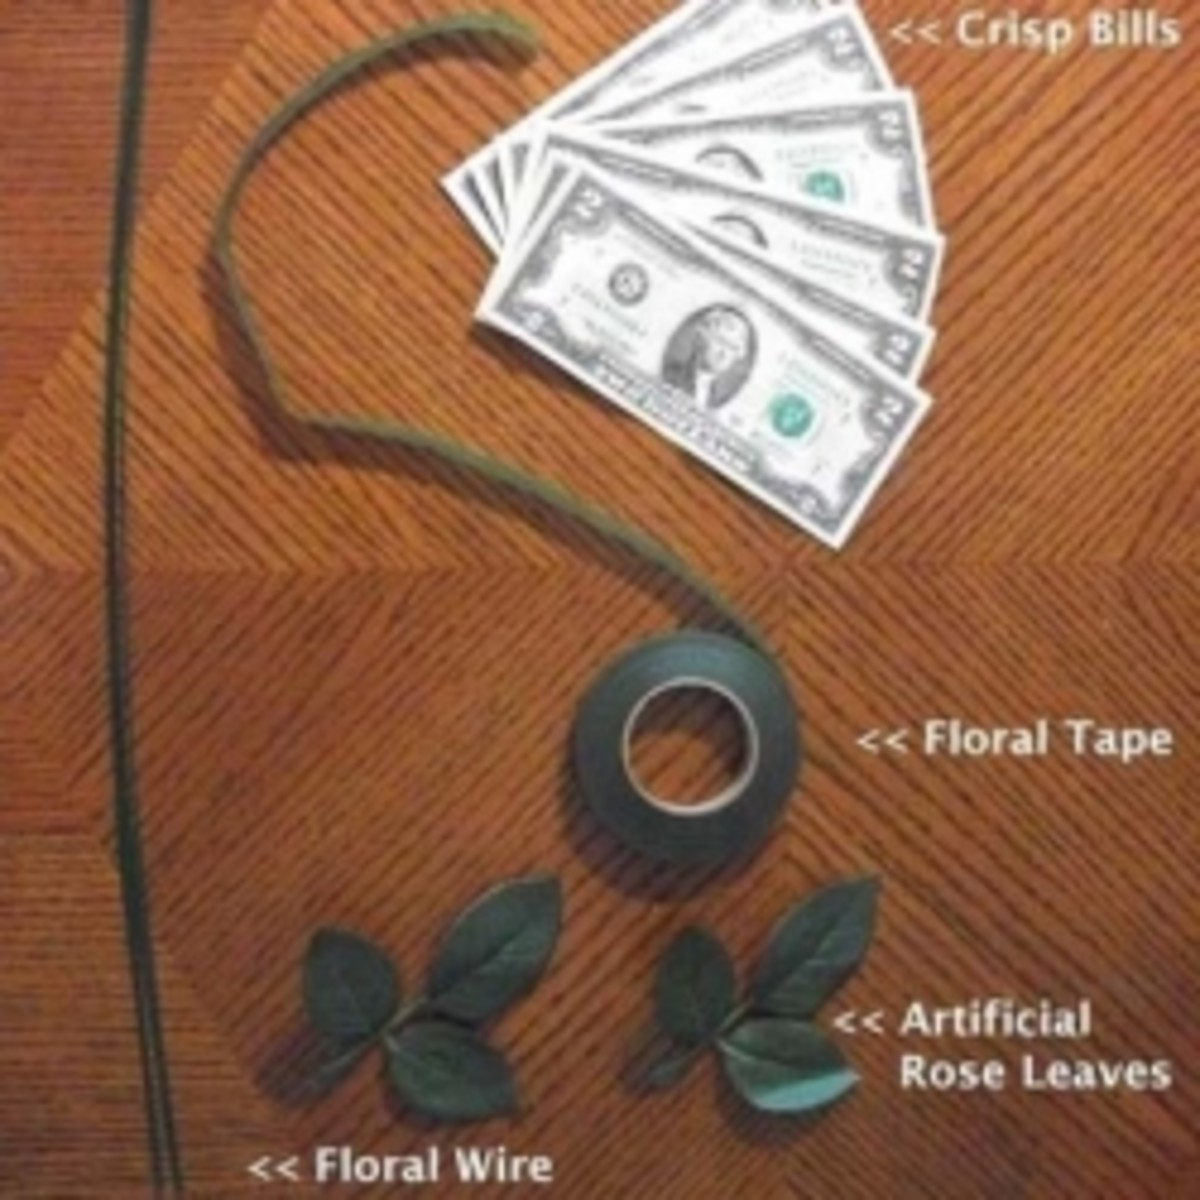 What Is Floral Tape?